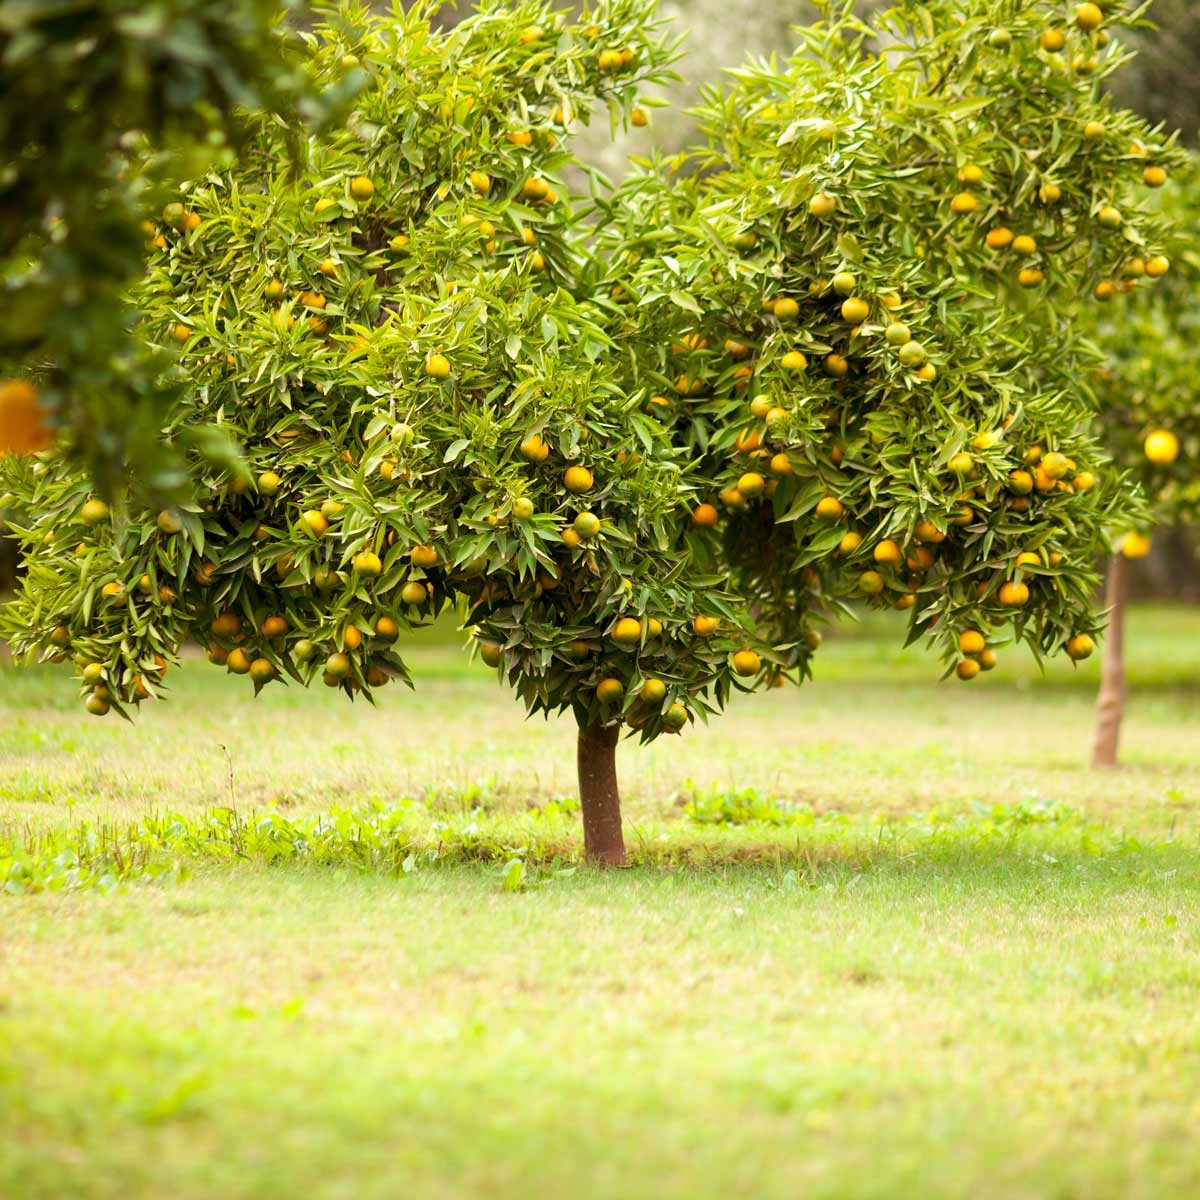 fruit tree in field